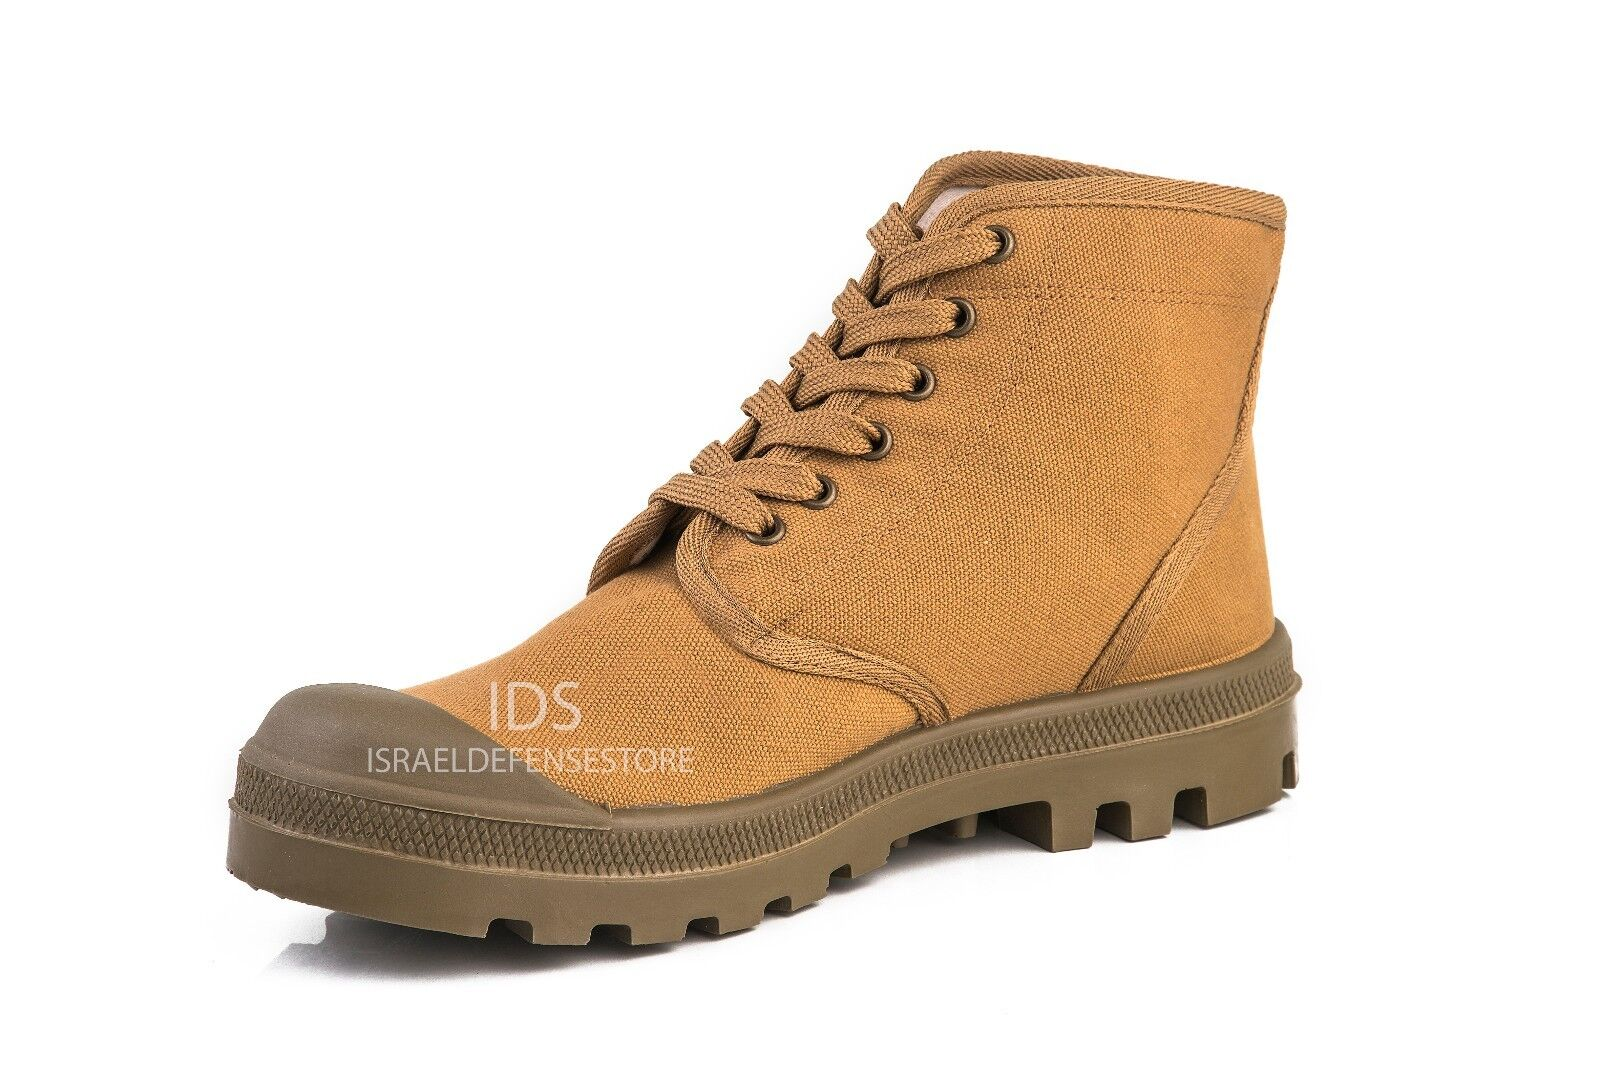 Israel Defense Forces Scout Commando Palladium Style TAN VEGAN Boots US13 EU47